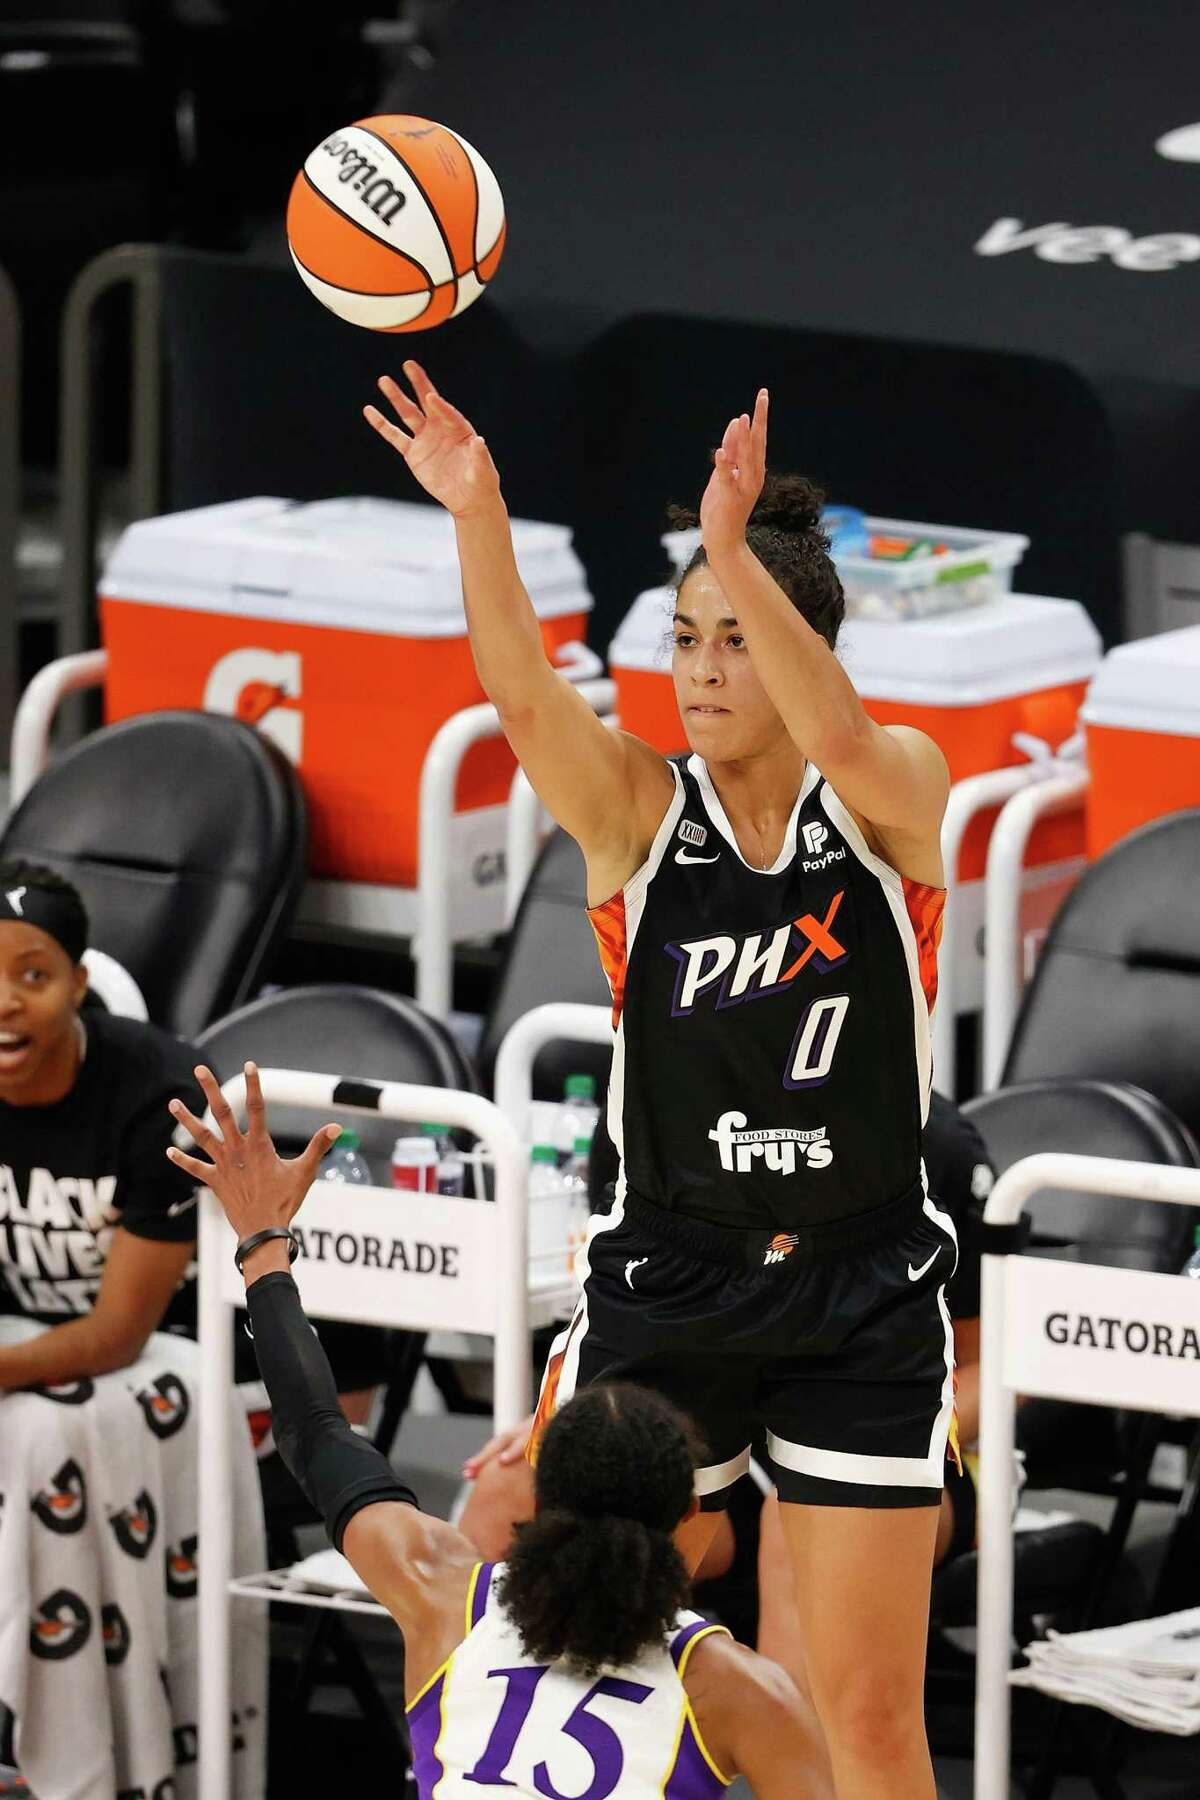 PHOENIX, ARIZONA - JUNE 27: Kia Nurse #0 of the Phoenix Mercury attempts a three-point shot against the Los Angeles Sparks during the first half of the WNBA game at Phoenix Suns Arena on June 27, 2021 in Phoenix, Arizona. NOTE TO USER: User expressly acknowledges and agrees that, by downloading and or using this photograph, User is consenting to the terms and conditions of the Getty Images License Agreement. (Photo by Christian Petersen/Getty Images)